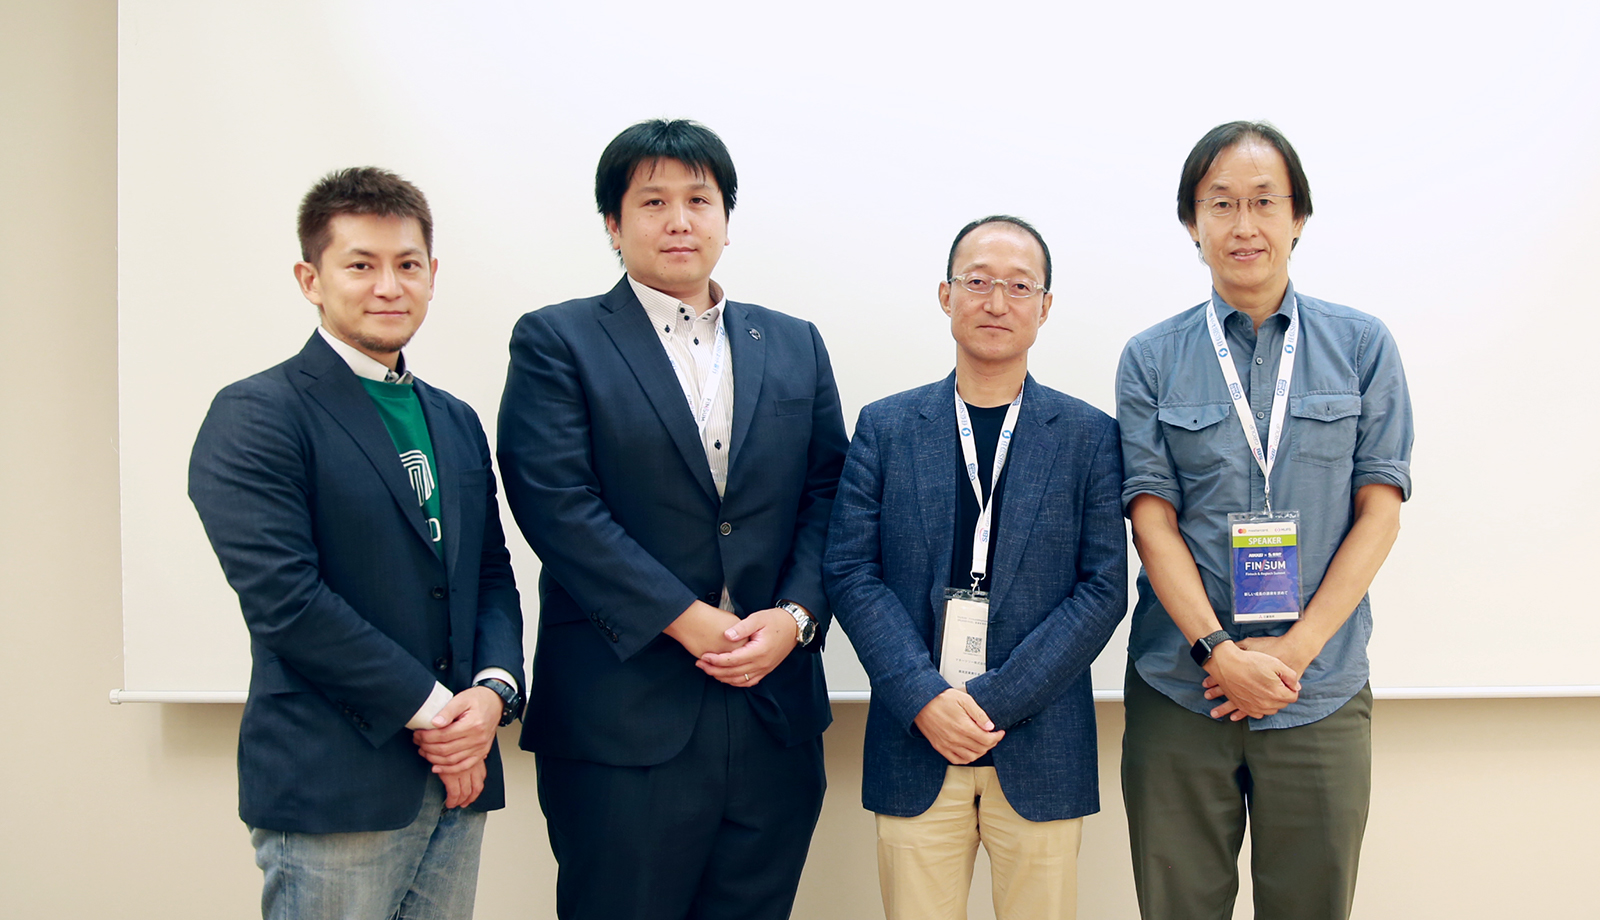 Moneytree's Taizo Miyagami with TRUSTDOCK CEO, Chiba and TRUSTe's  Director / Secretary General Saito with the moderator, technology writer, Ootani